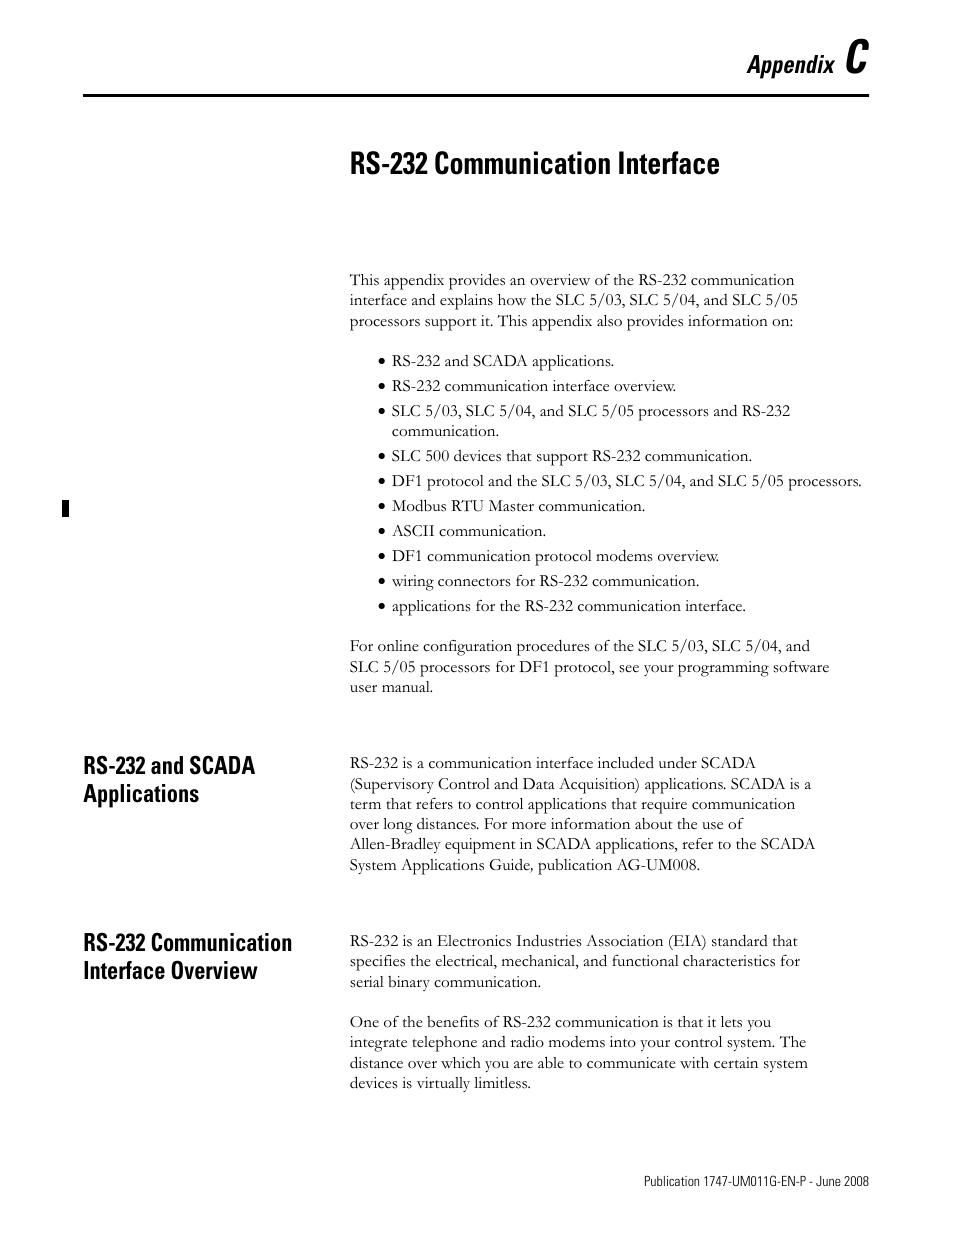 ... Rs-232 and scada applications, Rs-232 communication interface overview  | Rockwell Automation 1747-L5xx SLC 500 Modular Hardware Style User Manual  User ...